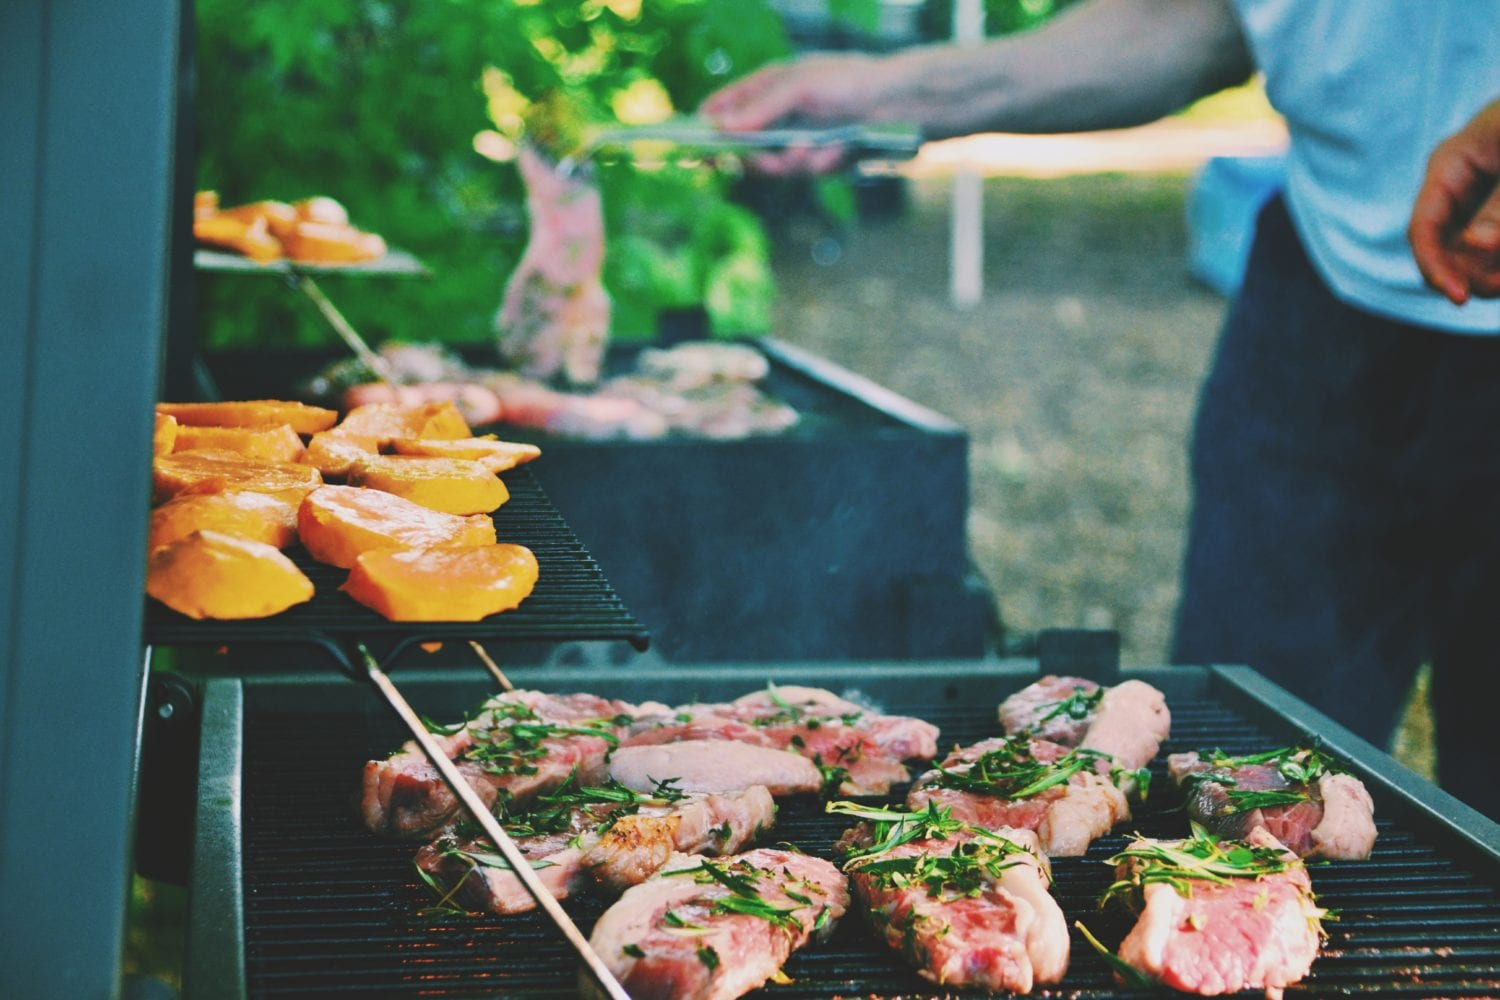 barbecue - unsplash